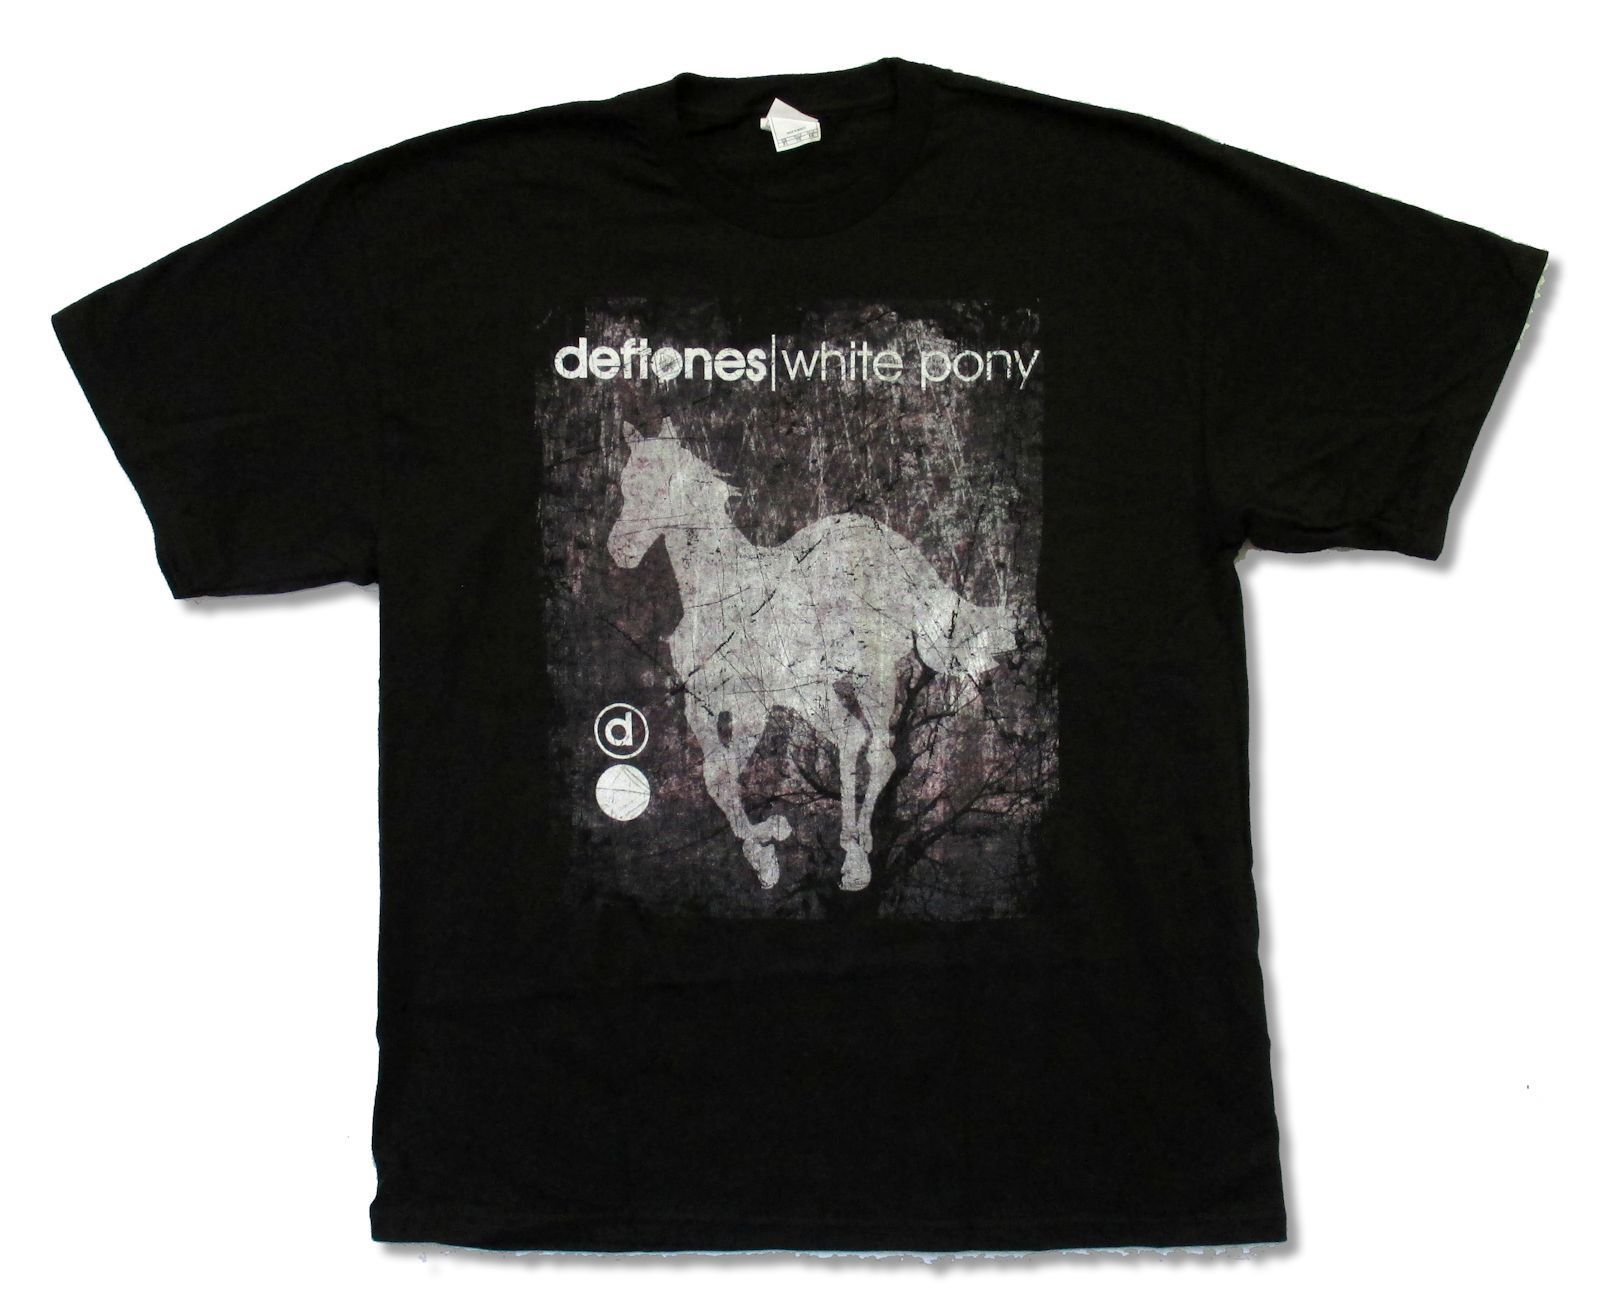 T shirt deftones white pony - Deftones White Pony Distressed Black T Shirt New Official Adult Men S High Quality Custom Printed Tops Hipster Tees T Shirt